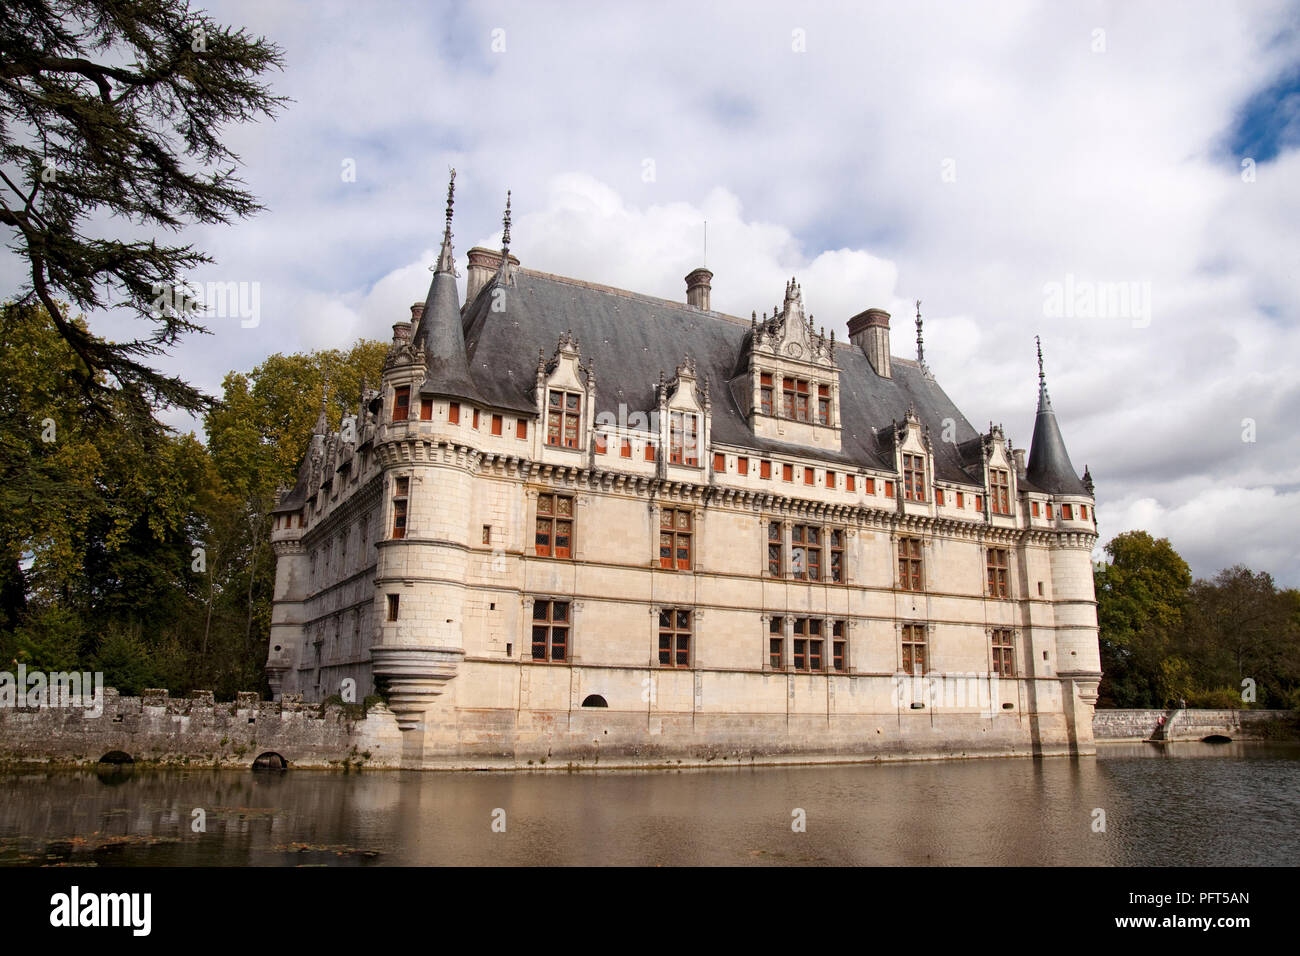 France, Indre-et-Loire, Azay-le-Rideau, 16th century French Renaissance Chateau built on island in Indre River - Stock Image